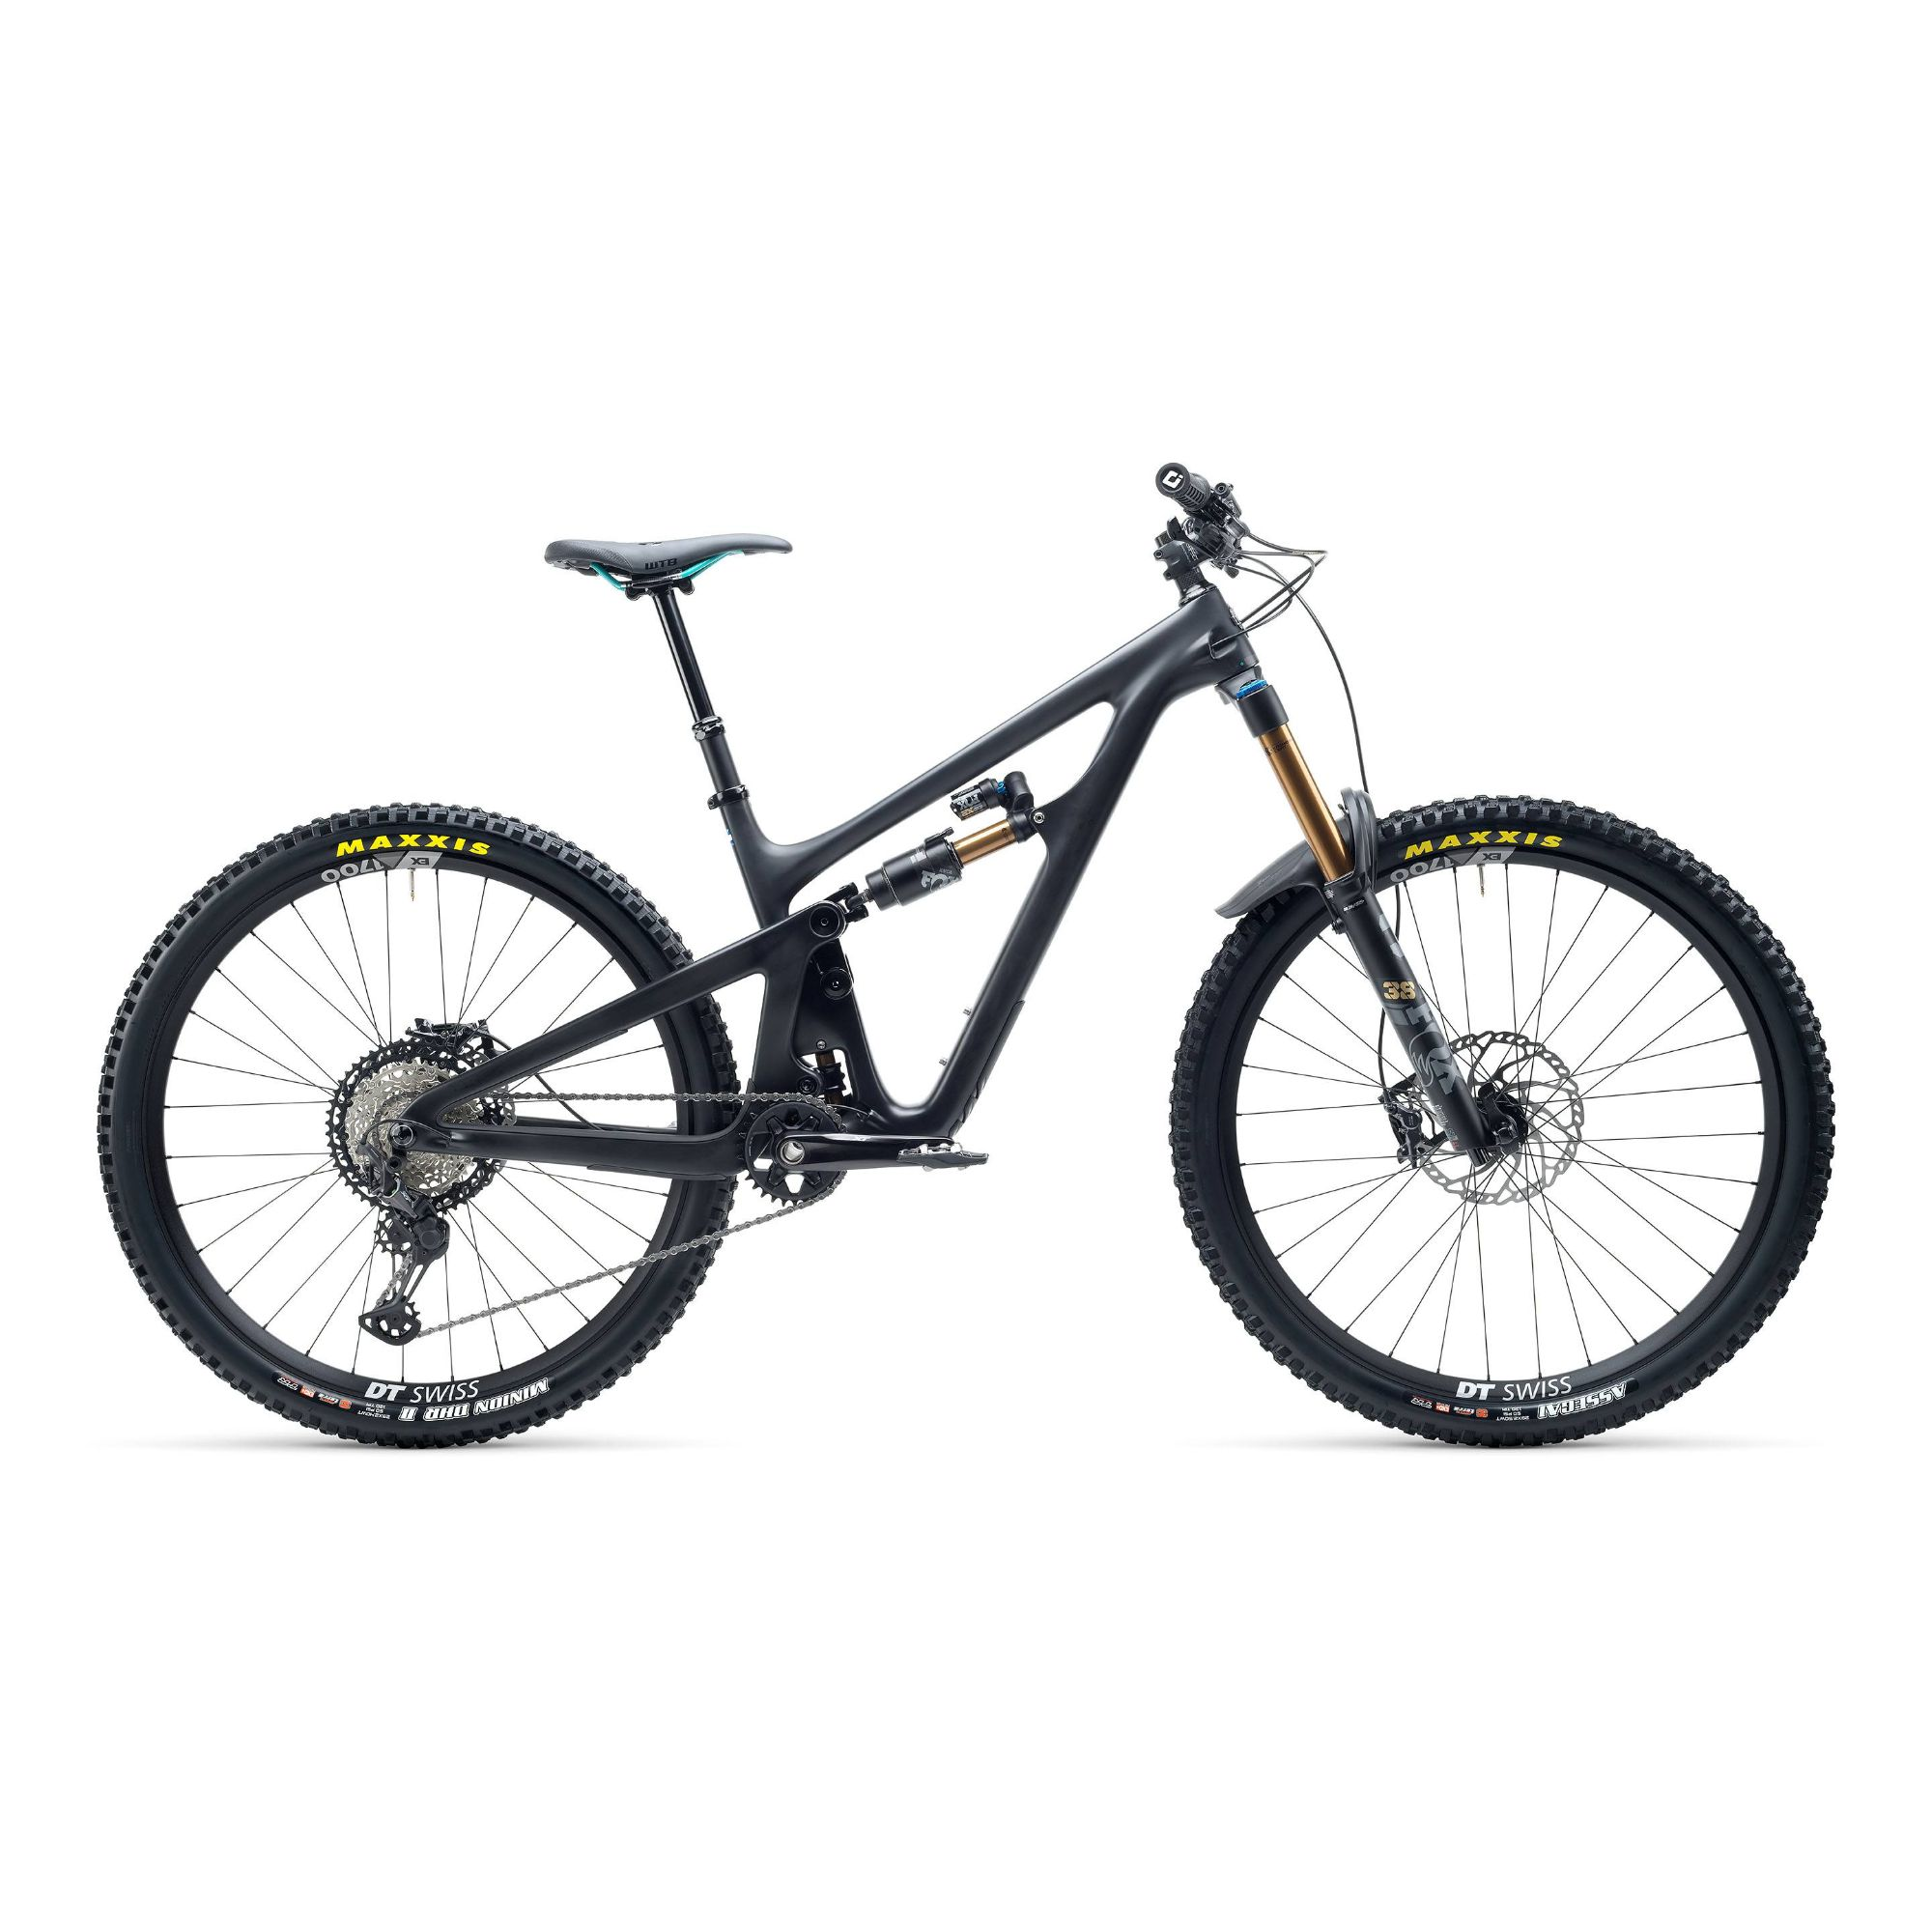 Yeti SB150 T series T1 29er XT Carbon Mountain Bike 2021 Raw / Grey